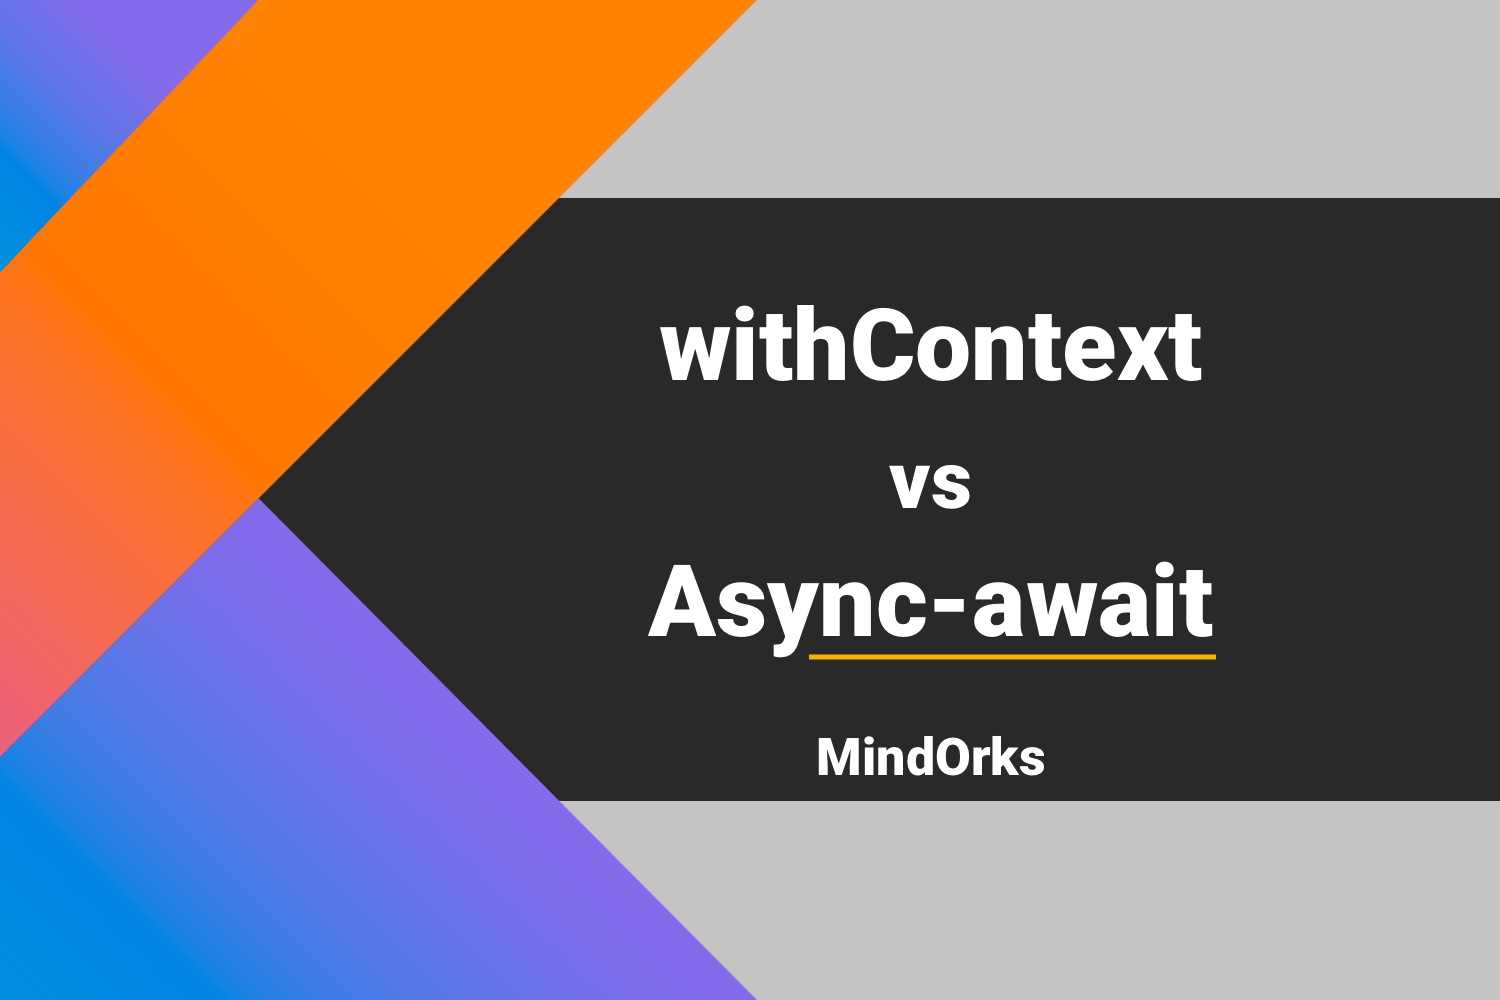 Kotlin withContext vs Async-await